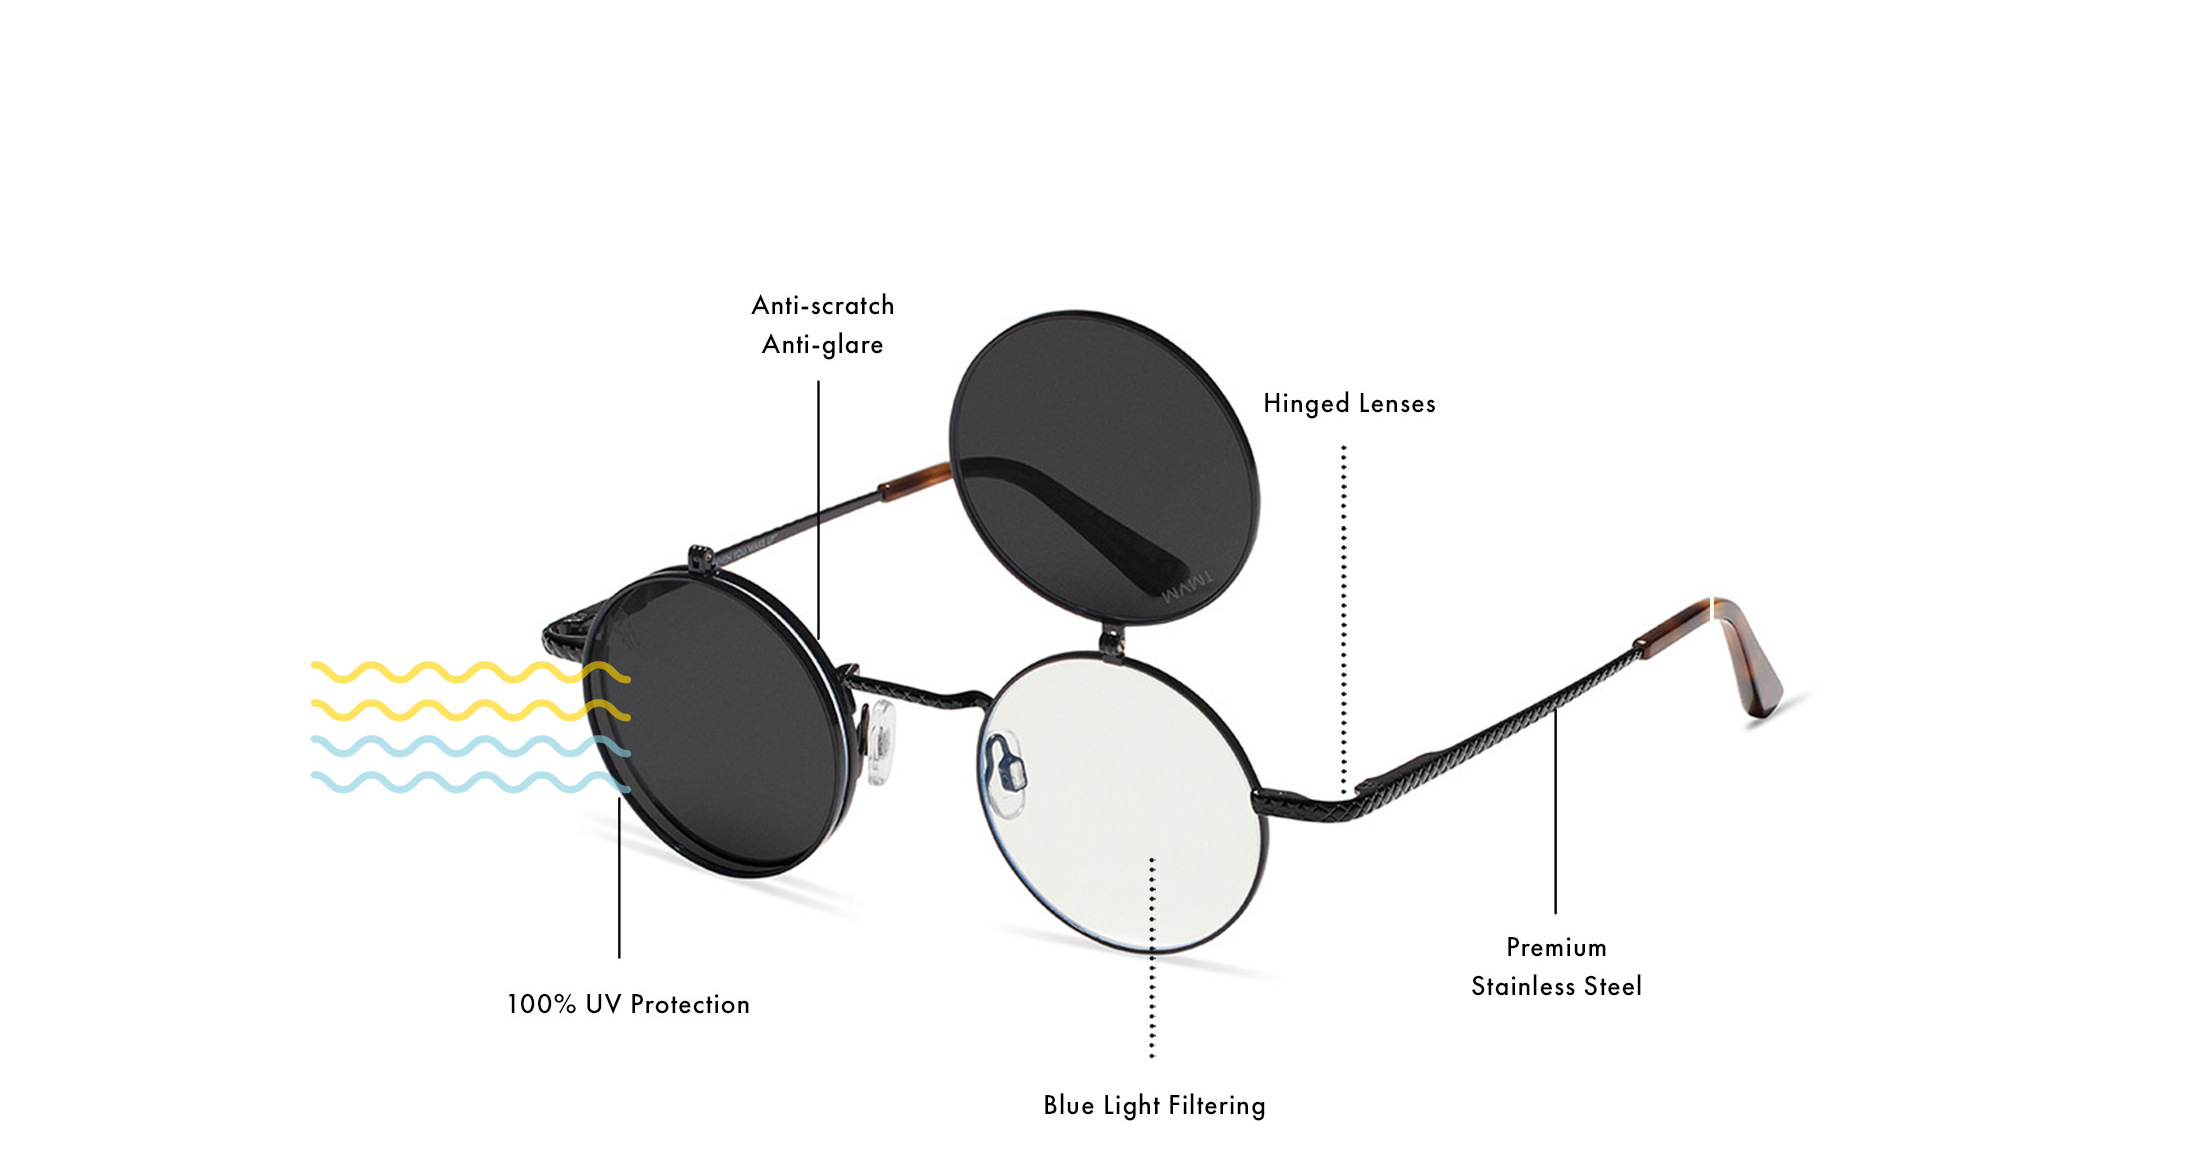 100% UV Protection, Anti-scratch, Anti-glare, Blue Light Filtering, Hinged Lenses, Premium Stainless Steel